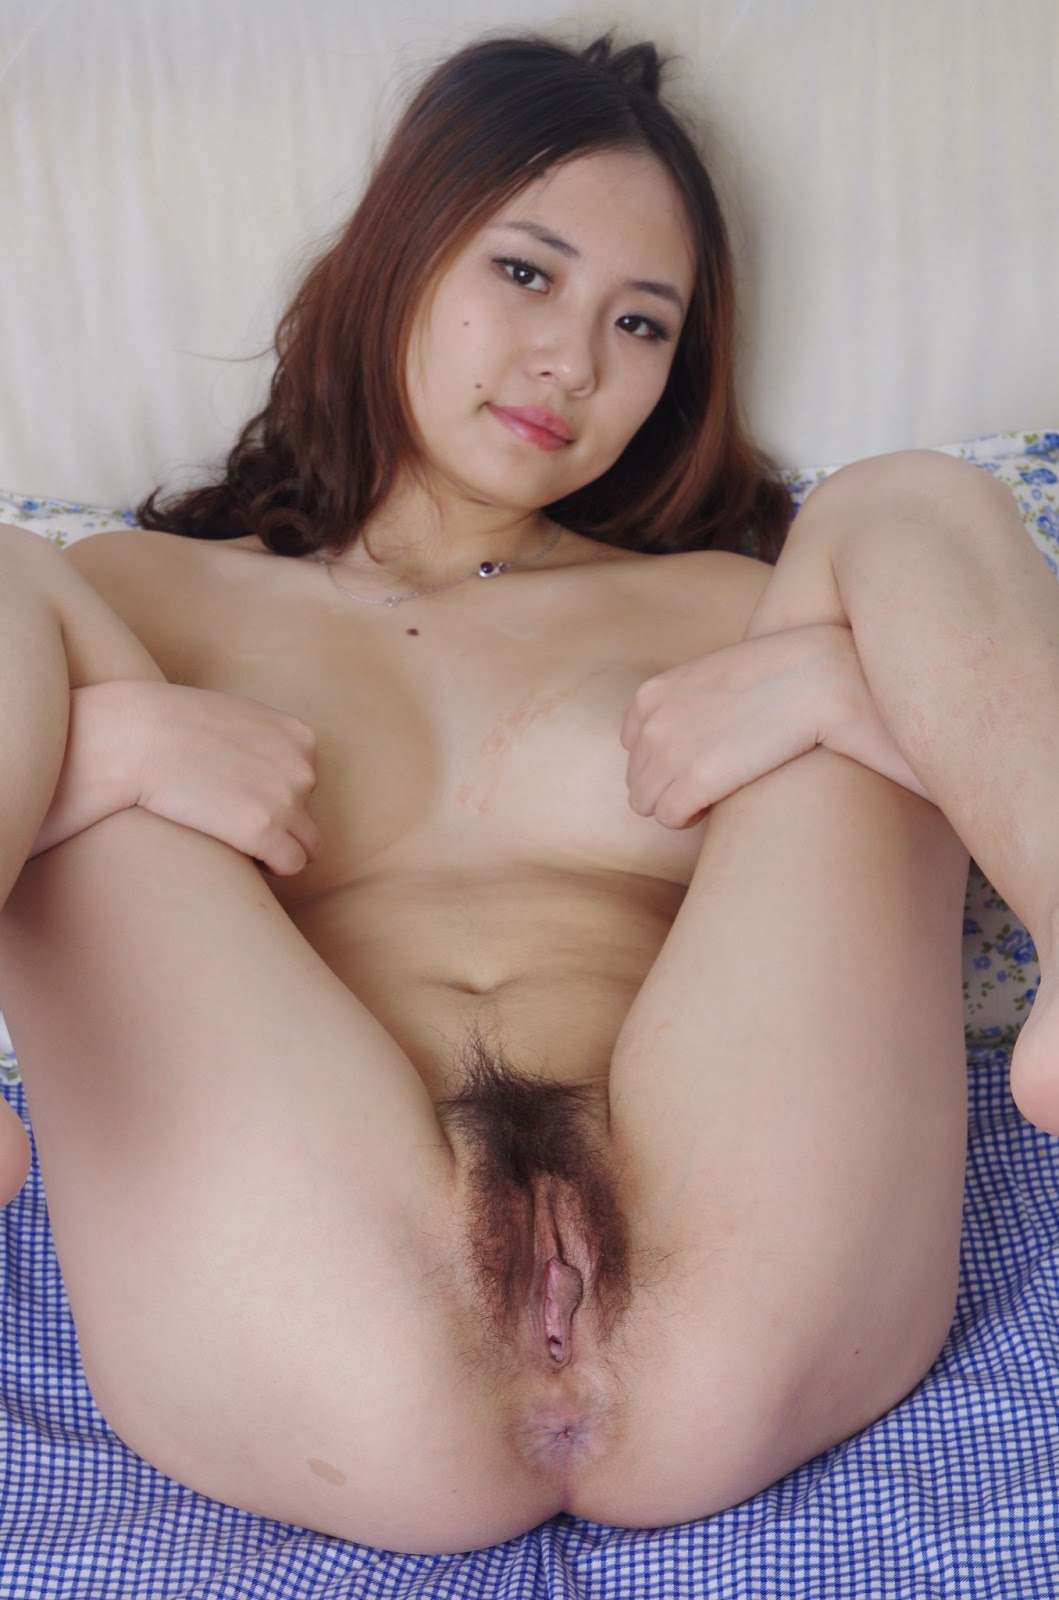 tall white girl like to fuck asian man